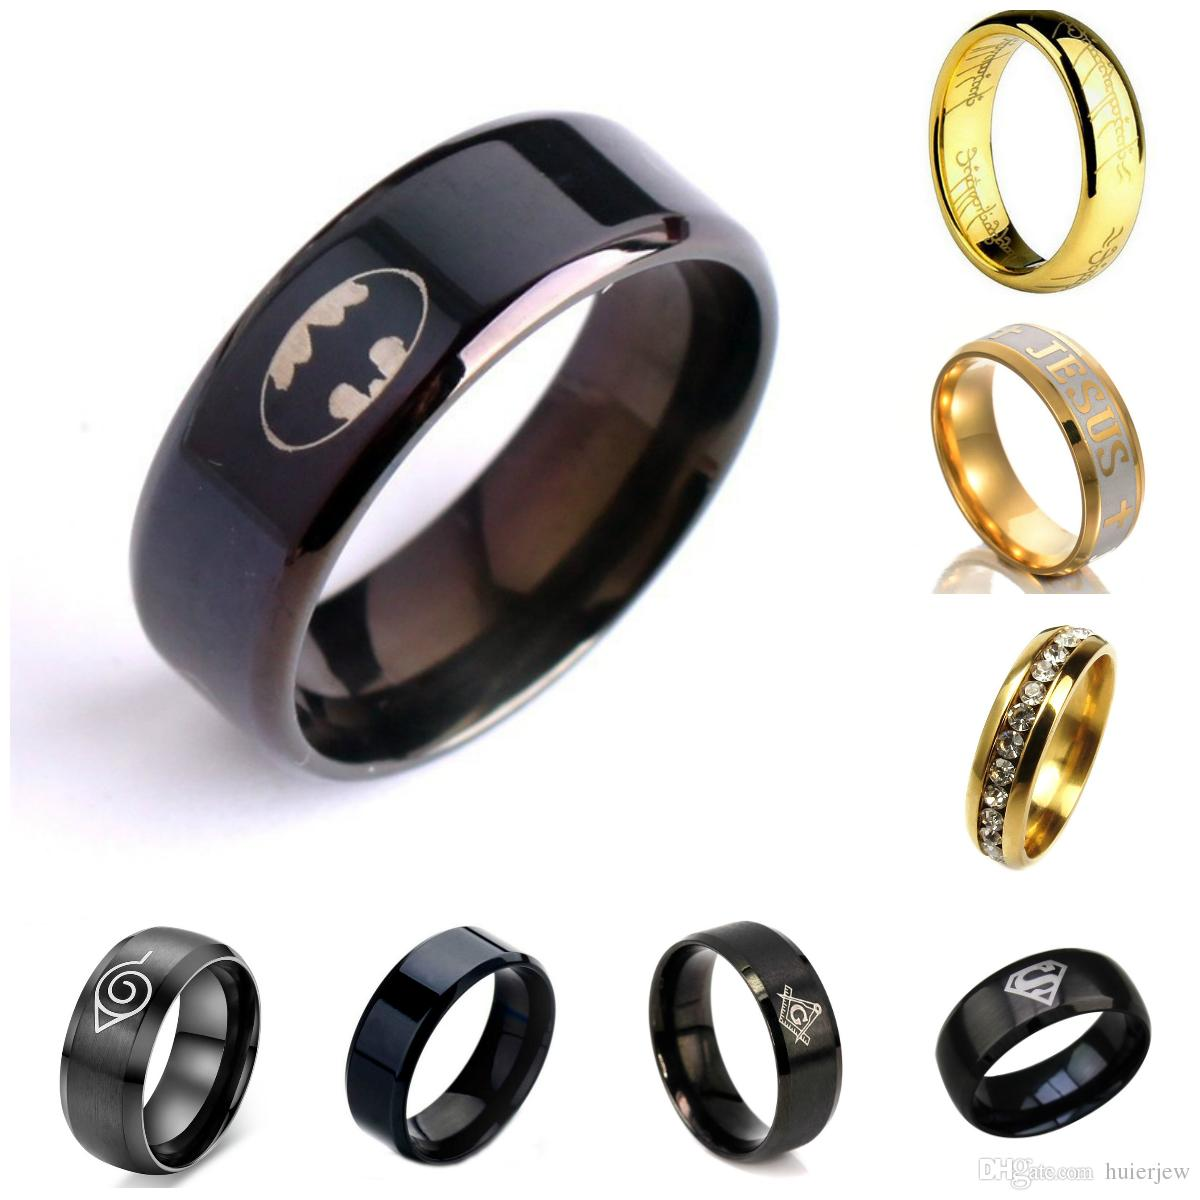 health magnet in titanium jewelry unisex bio hematite rings from stainless steel fashion men for rainso energy ring women wedding item band